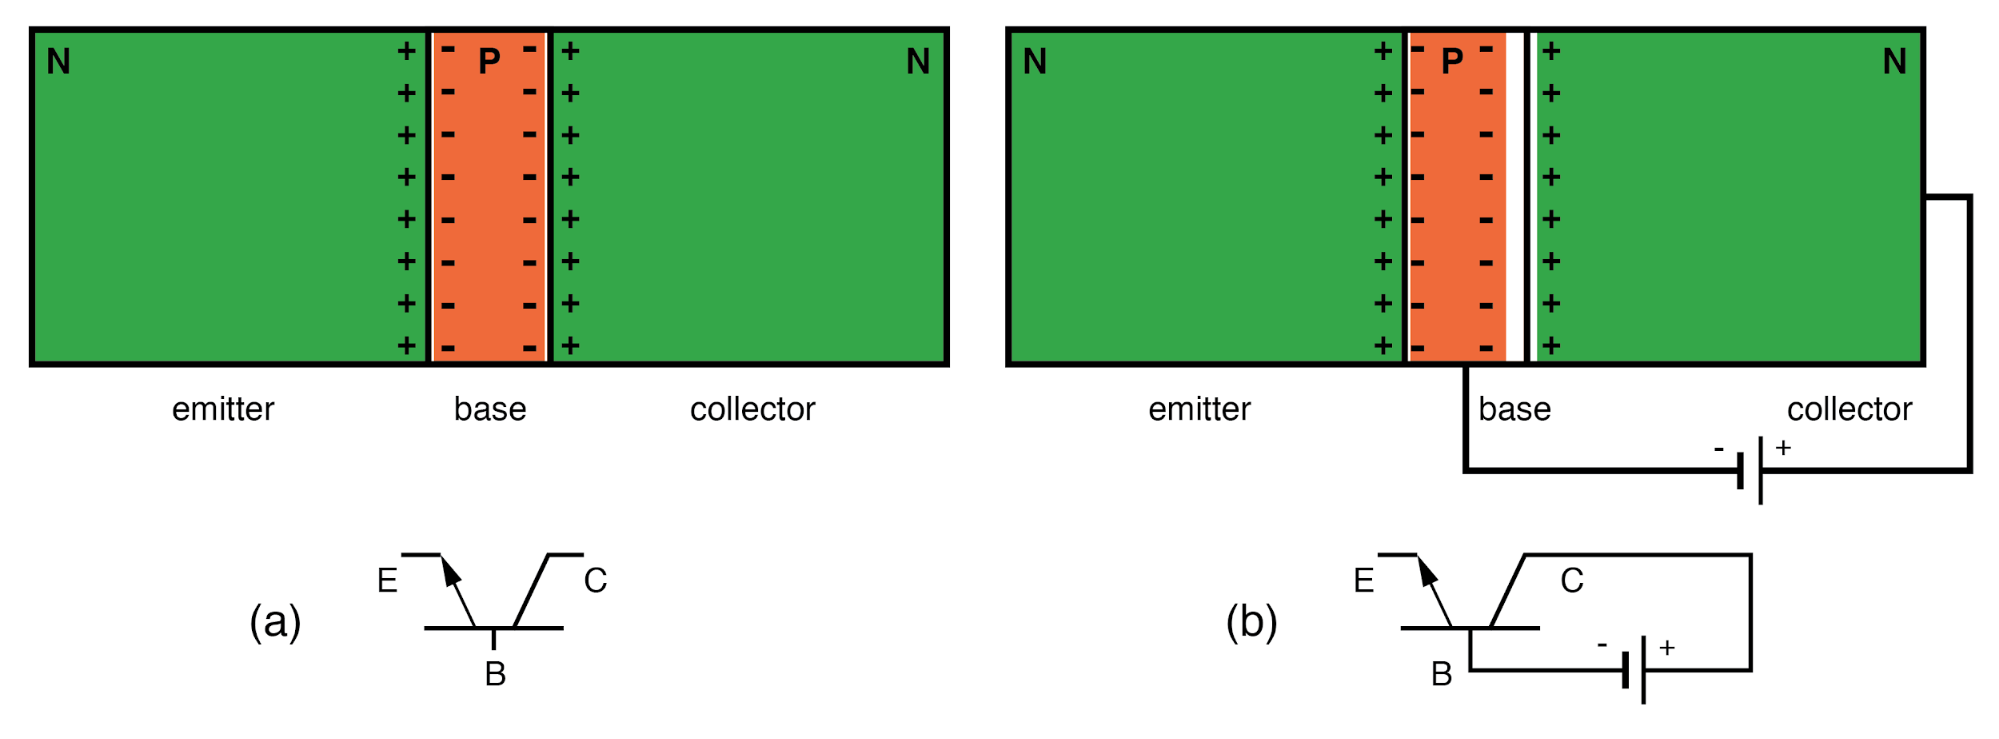 (a) NPN junction bipolar transistor. (b) Apply reverse bias to collector base junction.